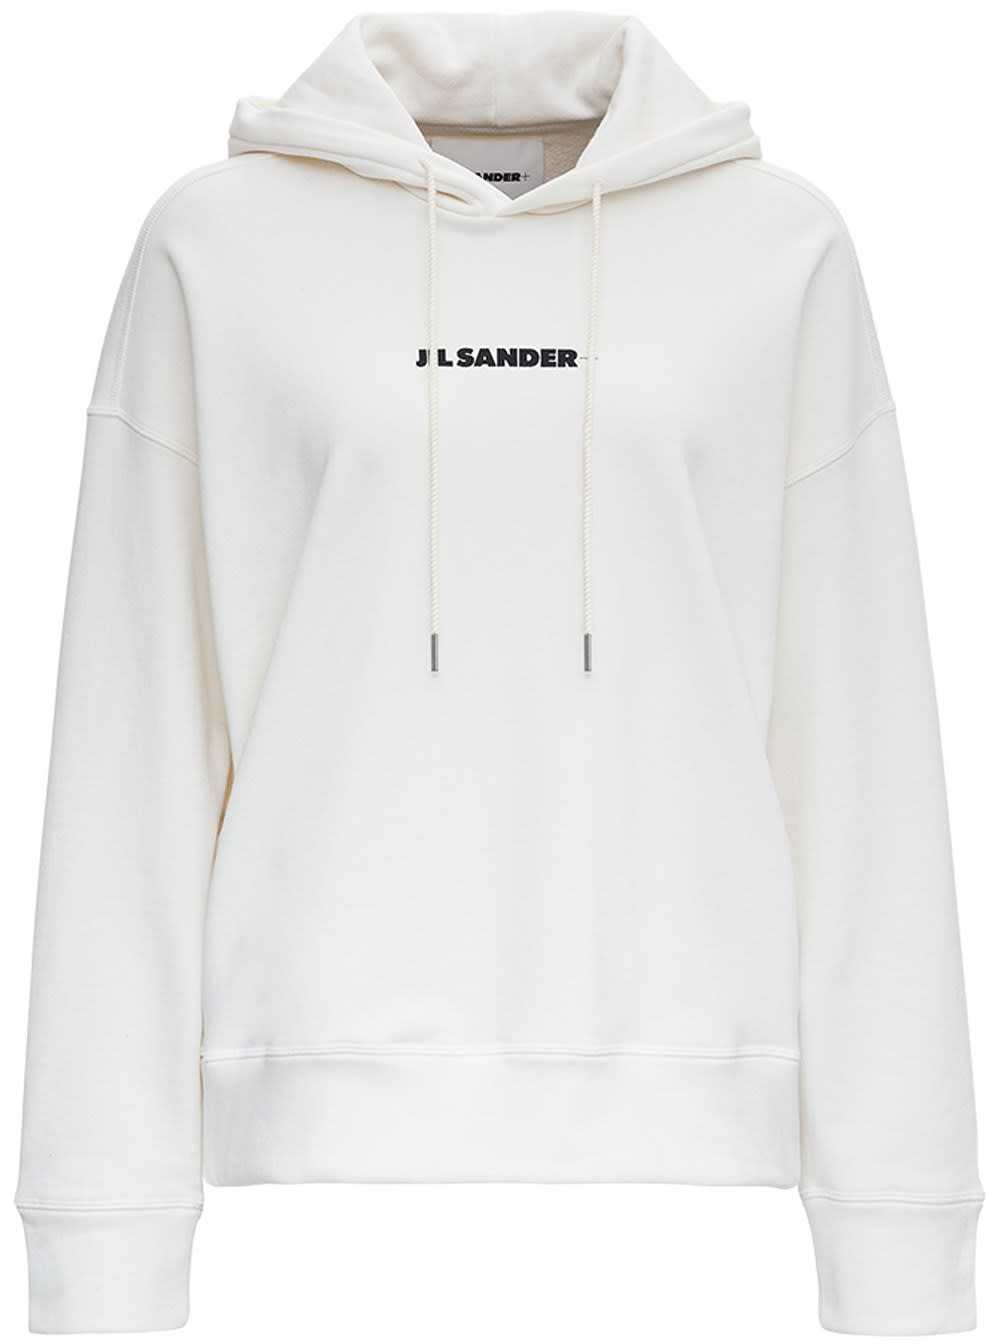 Jil Sander SWEATERSHIRT W/HOOD LS IN ORGANIC COTTON FRENCH TERRY